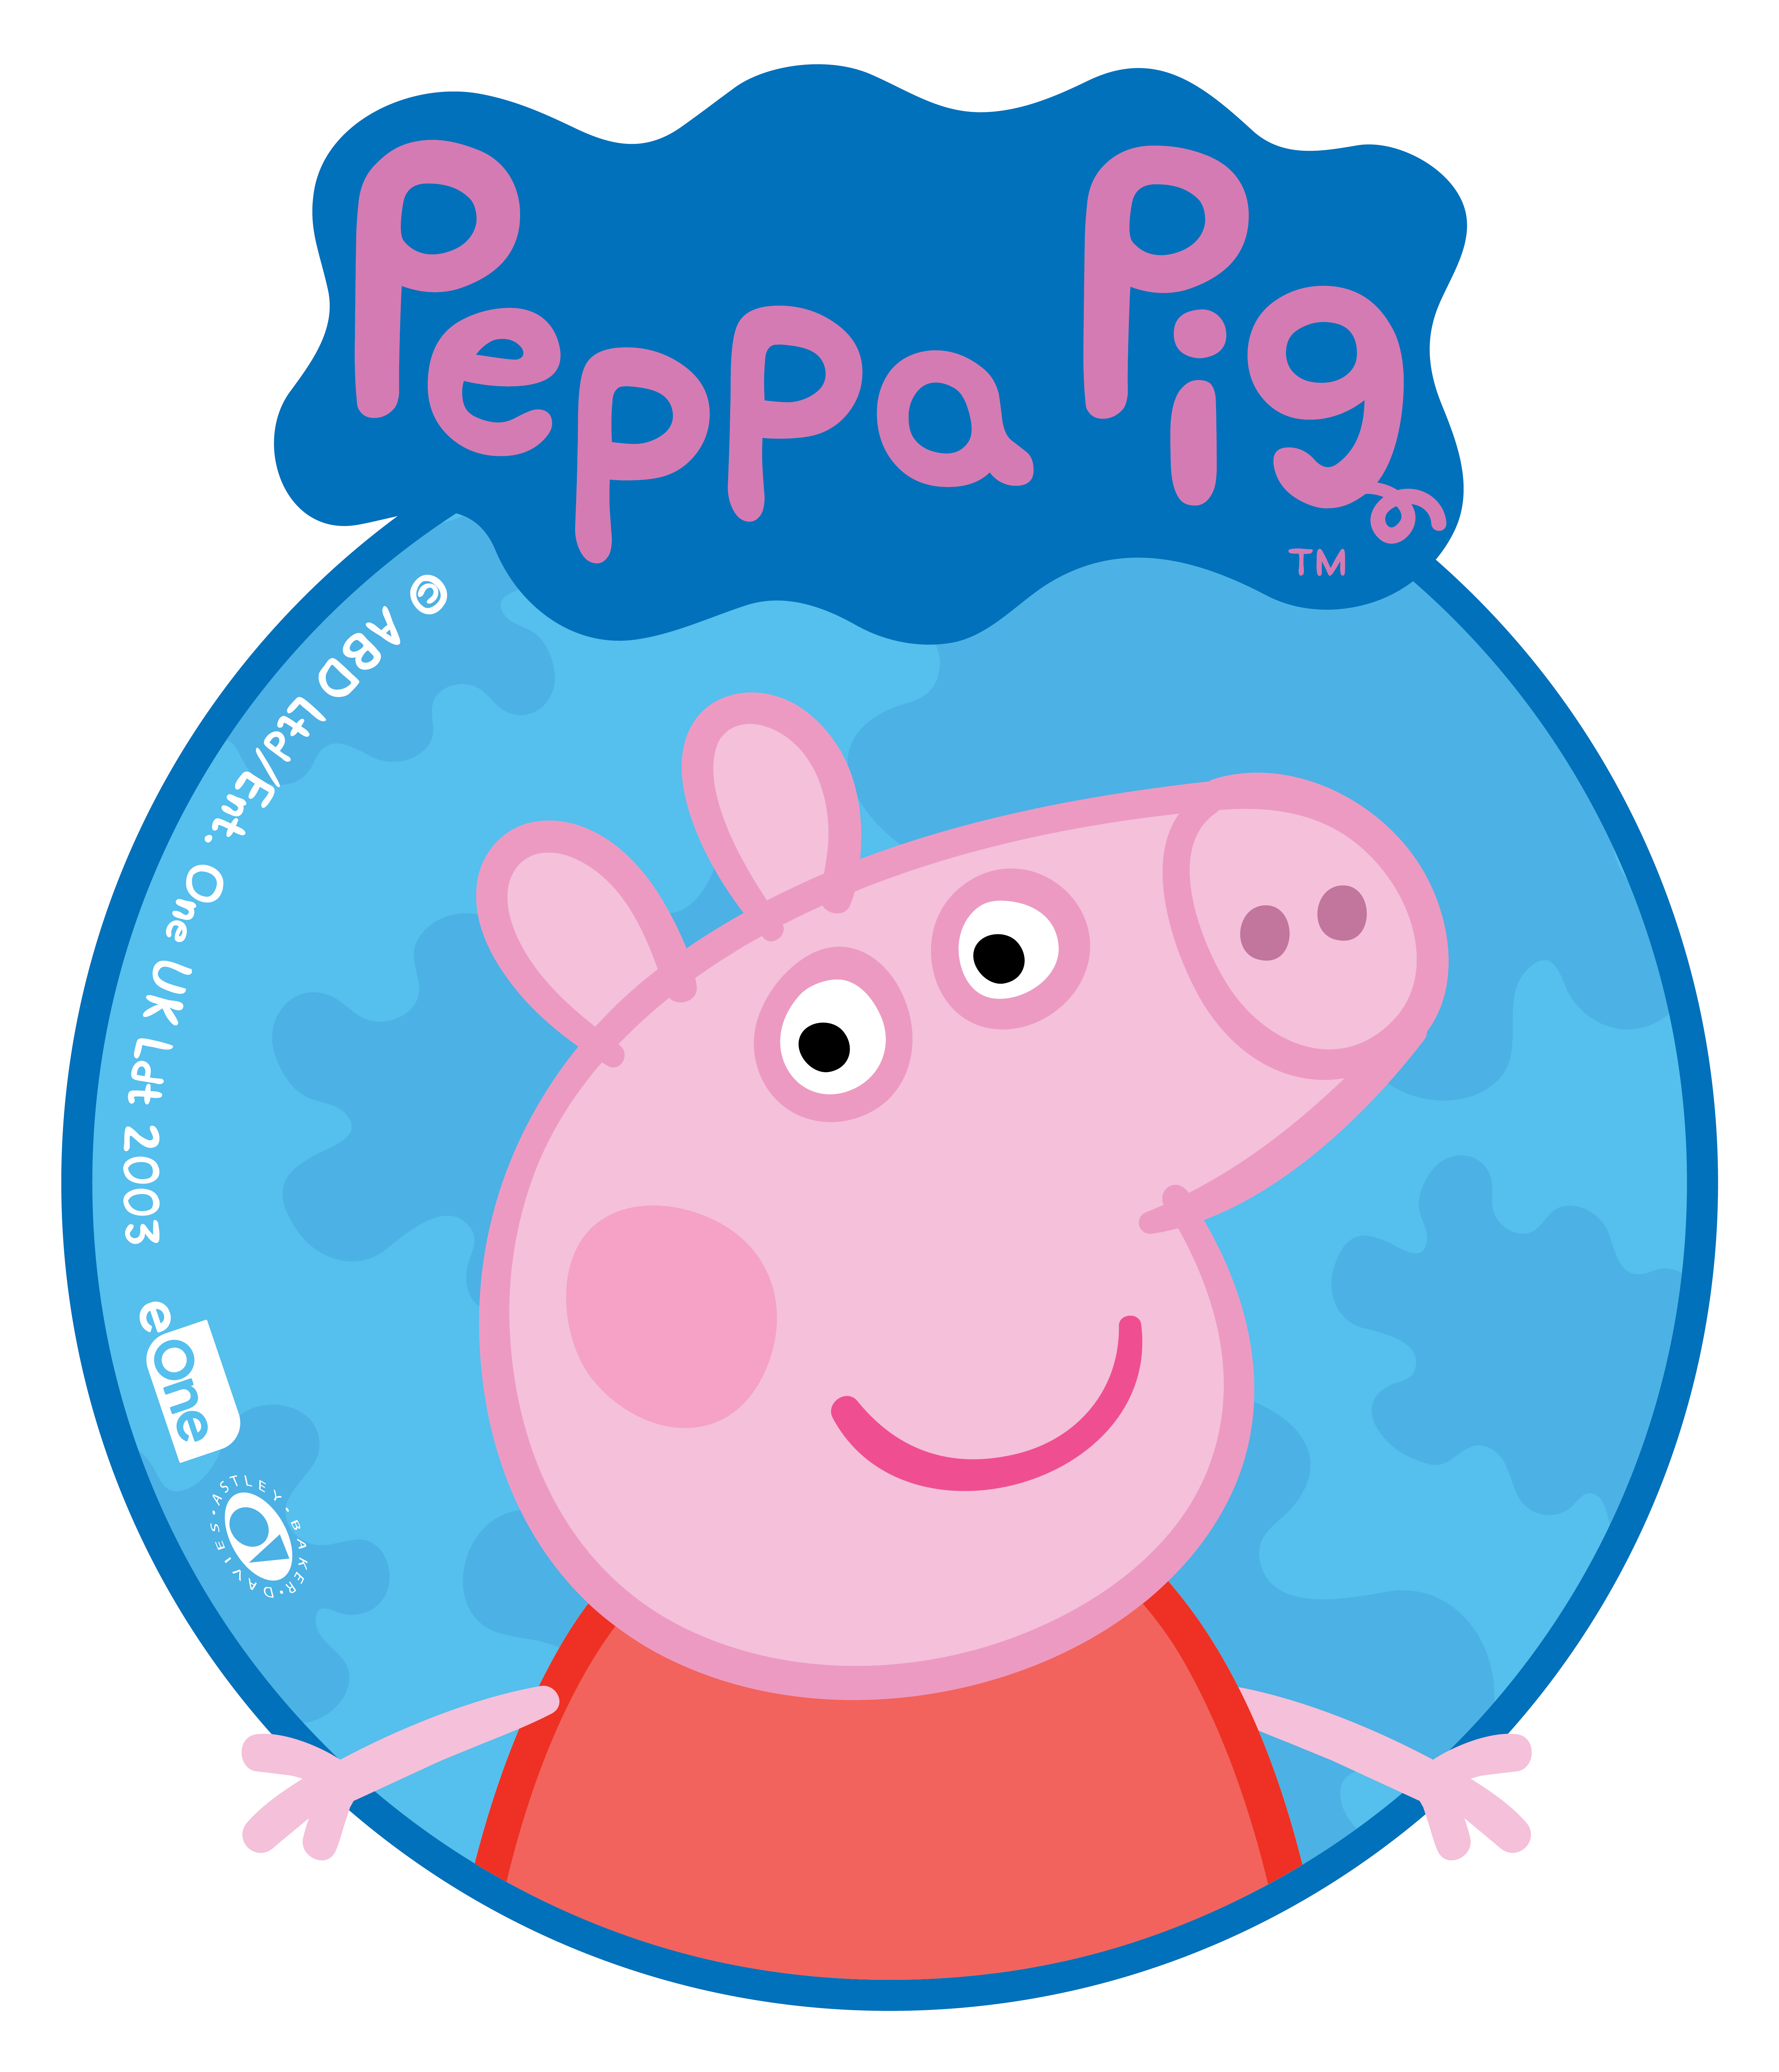 Transparent Peppa Pig Clipart Png - Peppa Pig - Full Size ...